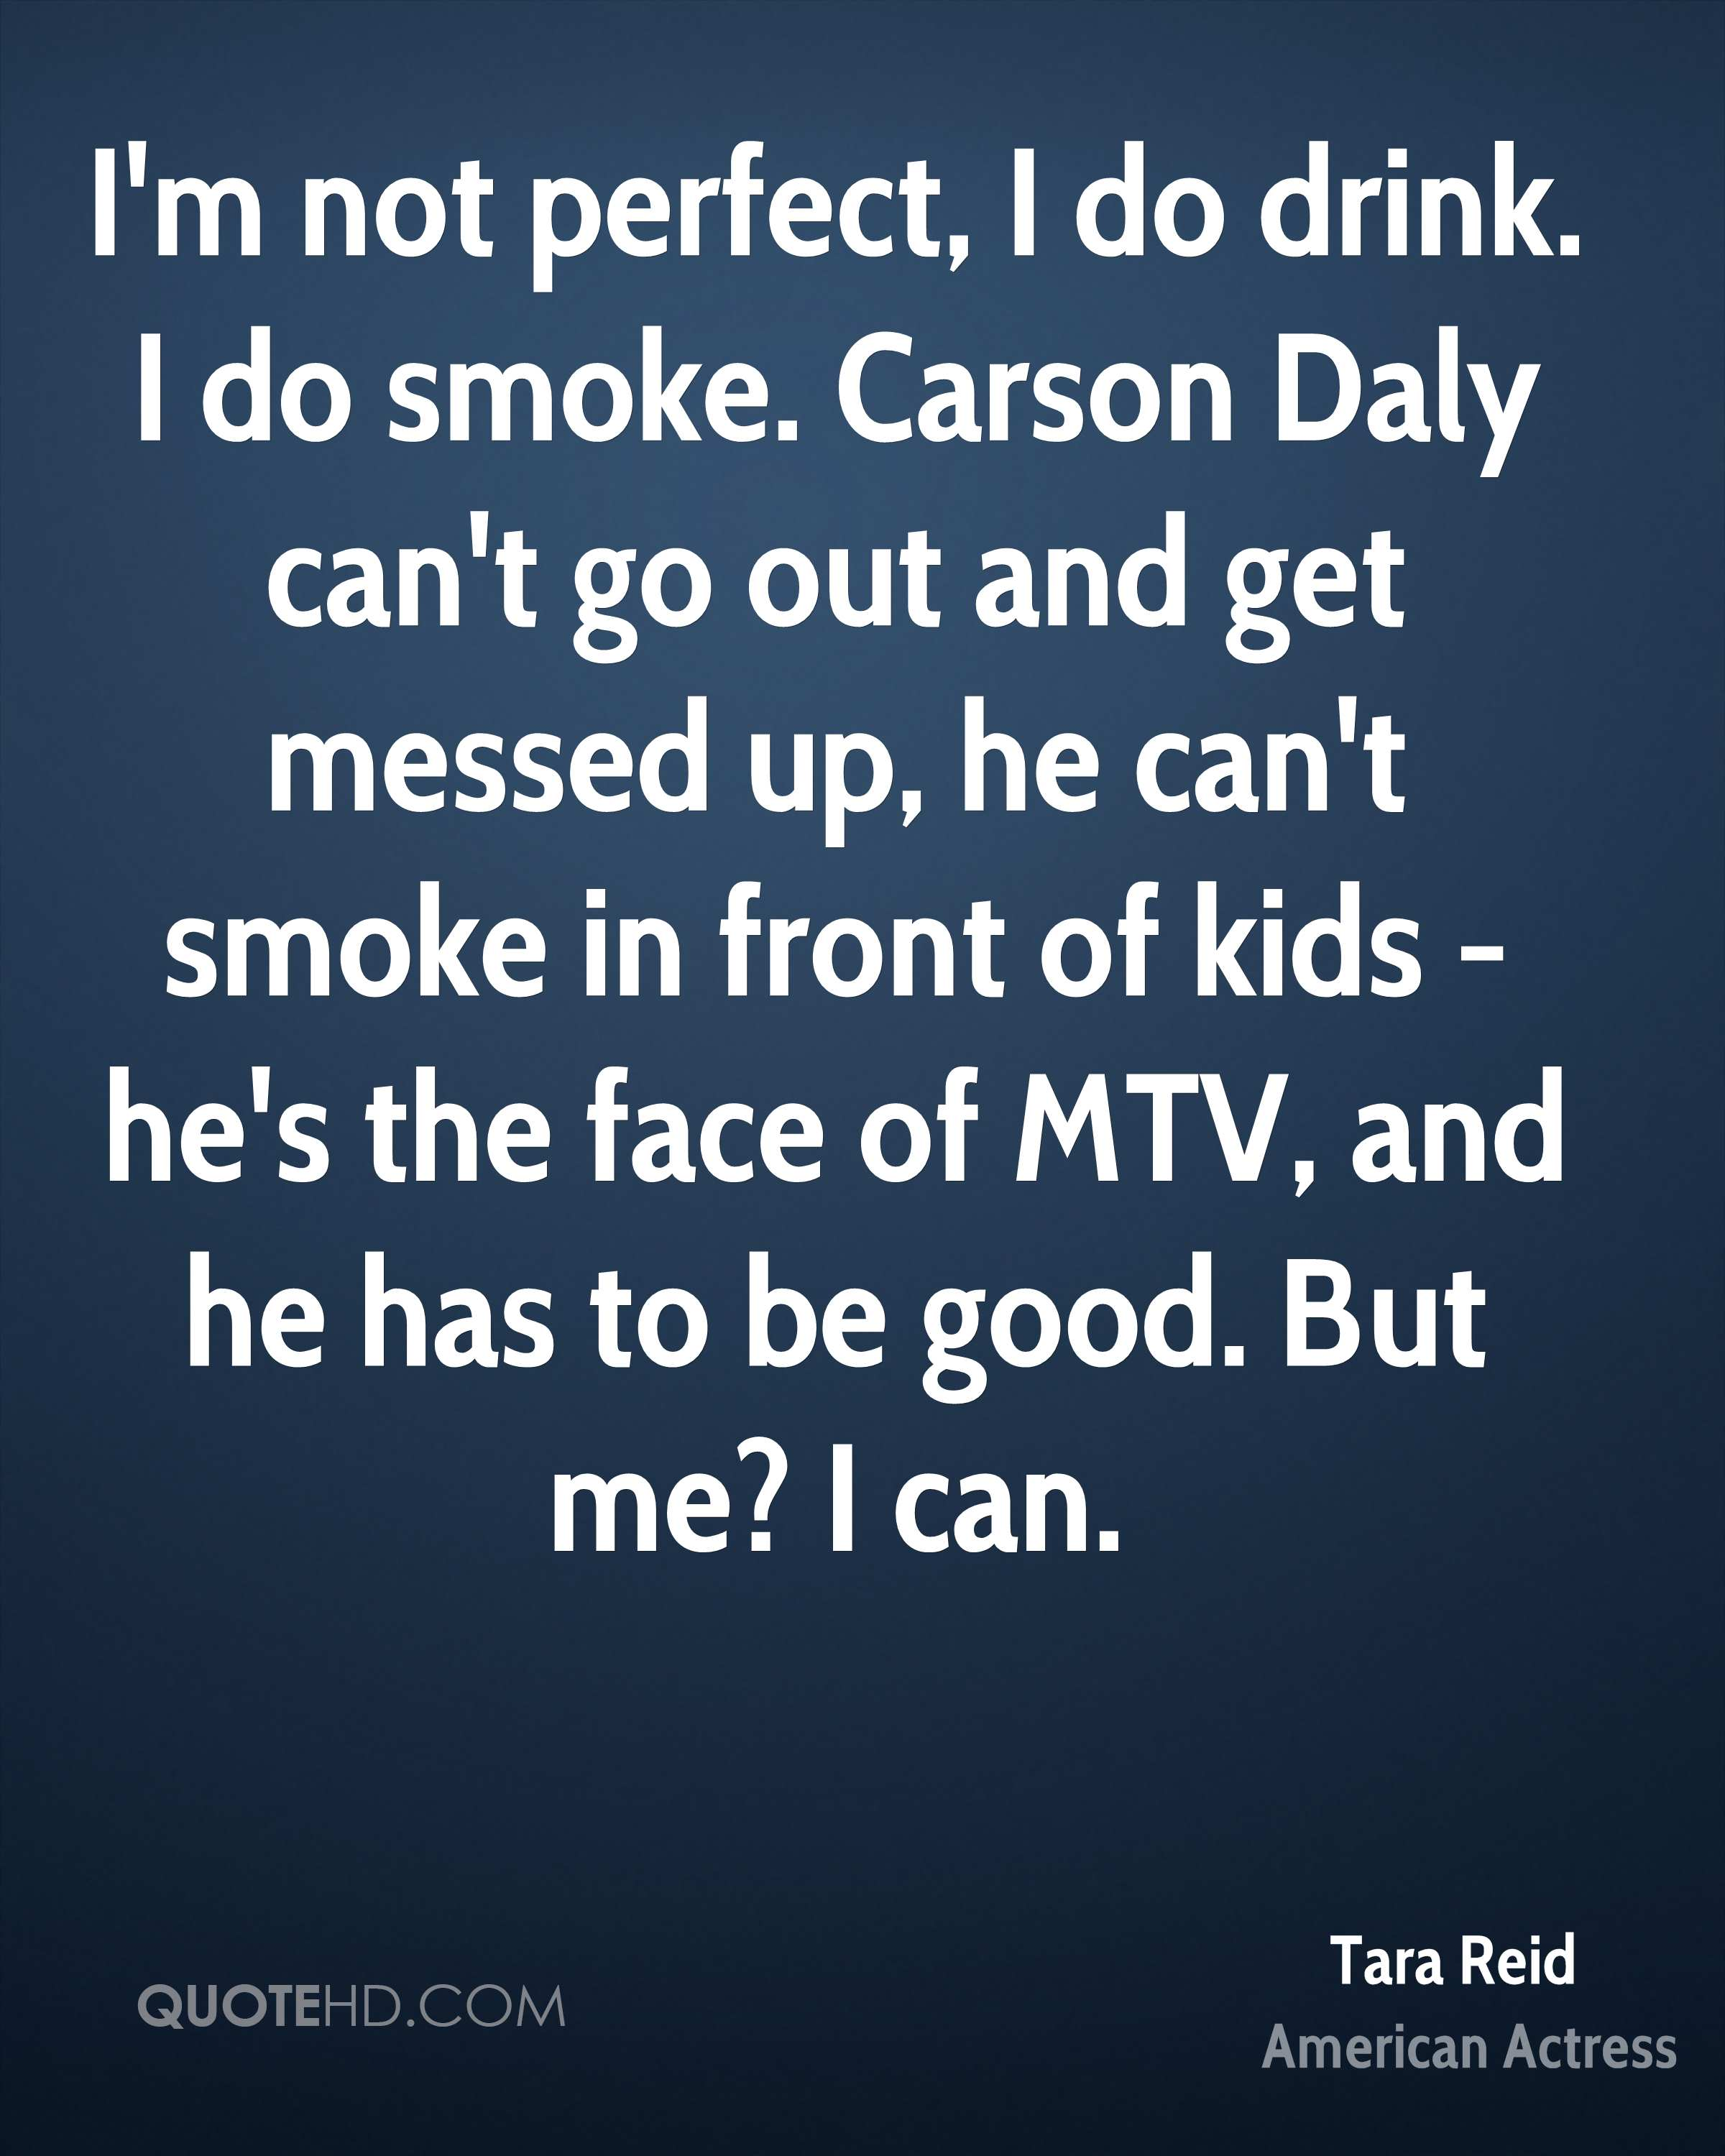 I'm not perfect, I do drink. I do smoke. Carson Daly can't go out and get messed up, he can't smoke in front of kids - he's the face of MTV, and he has to be good. But me? I can.